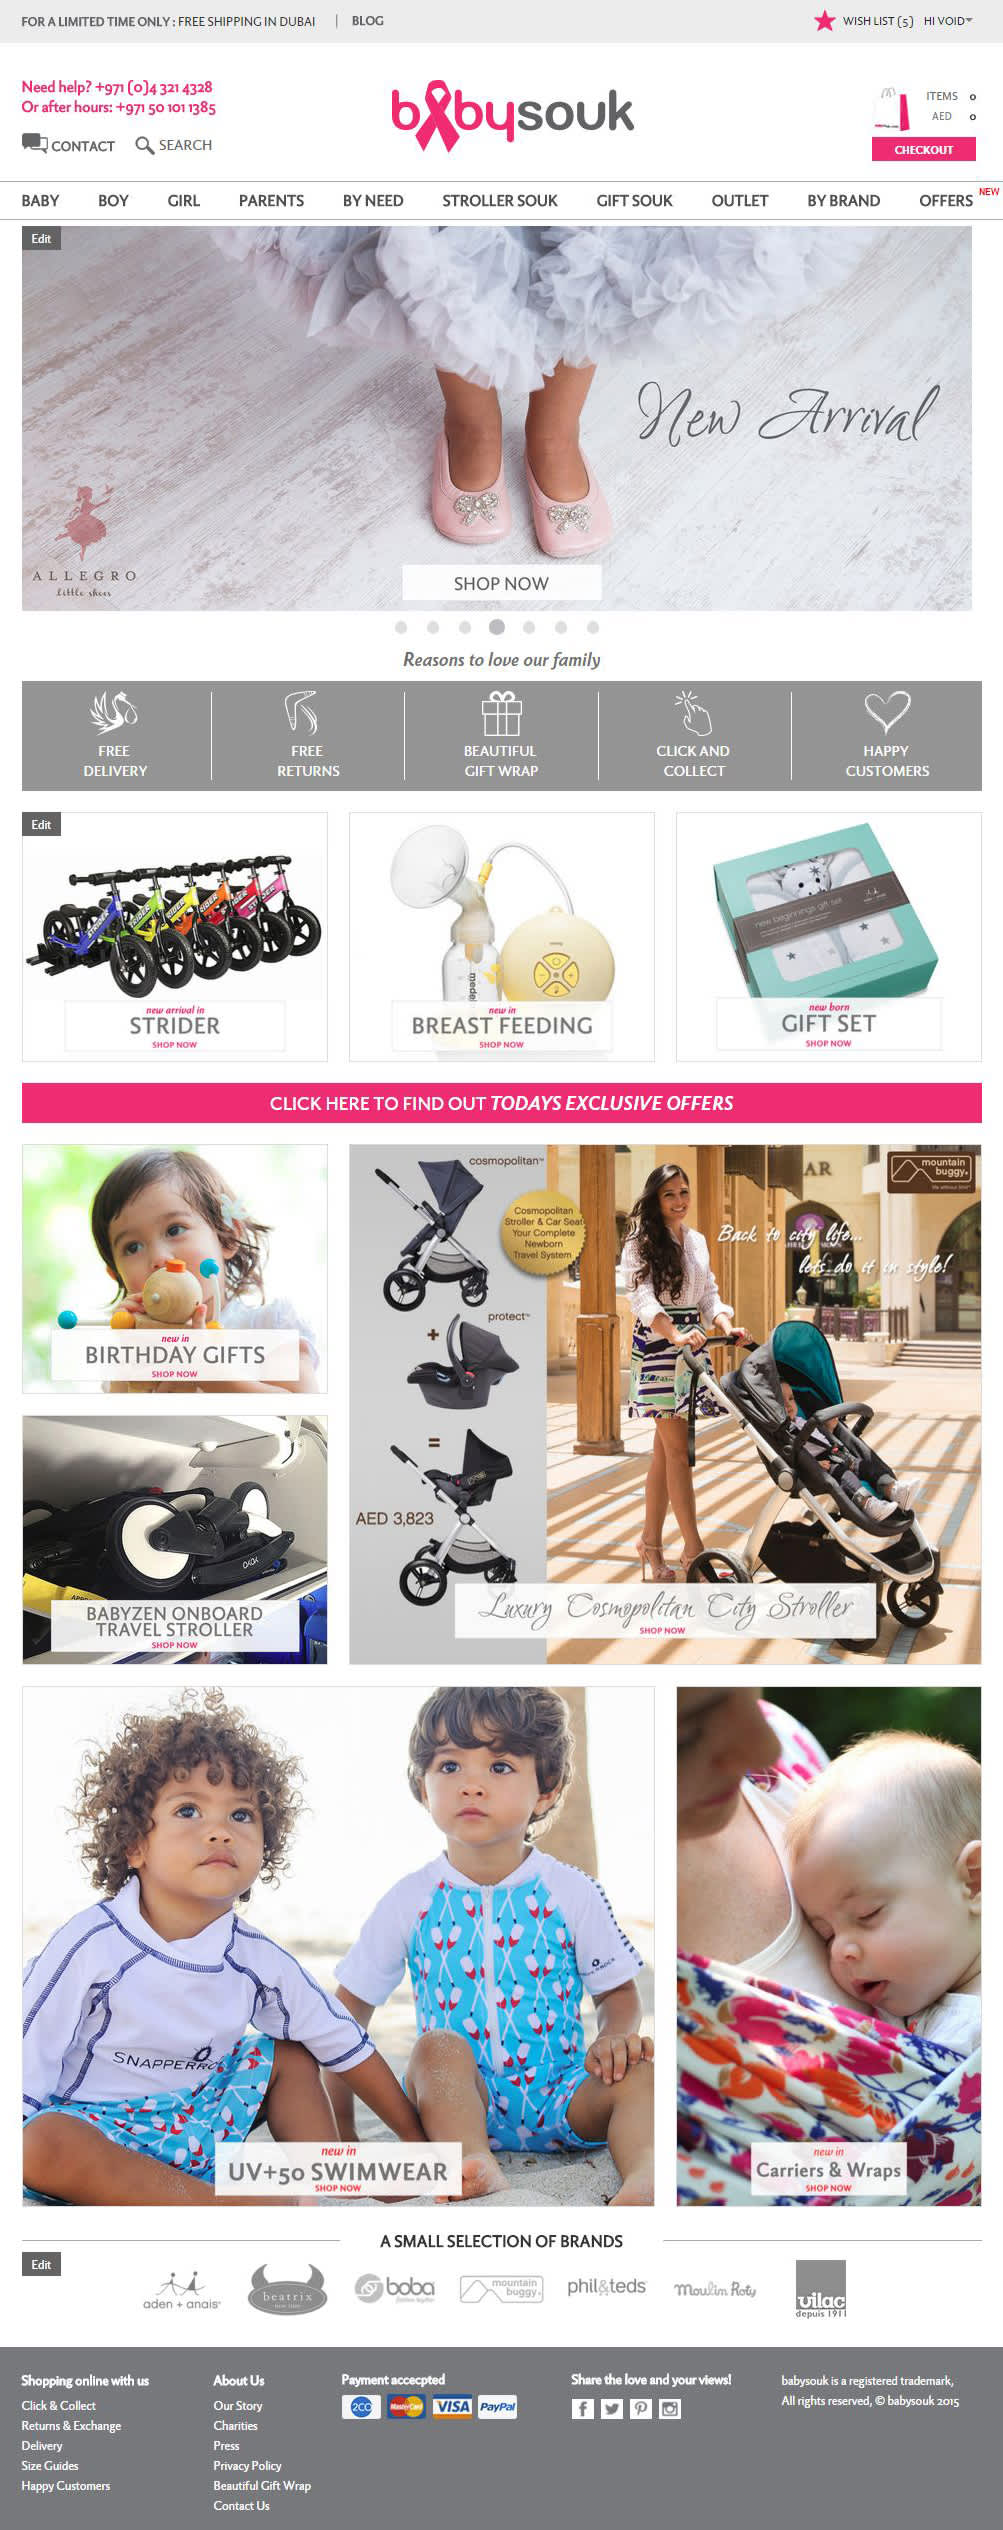 Babysouk Web and Mobile Sites